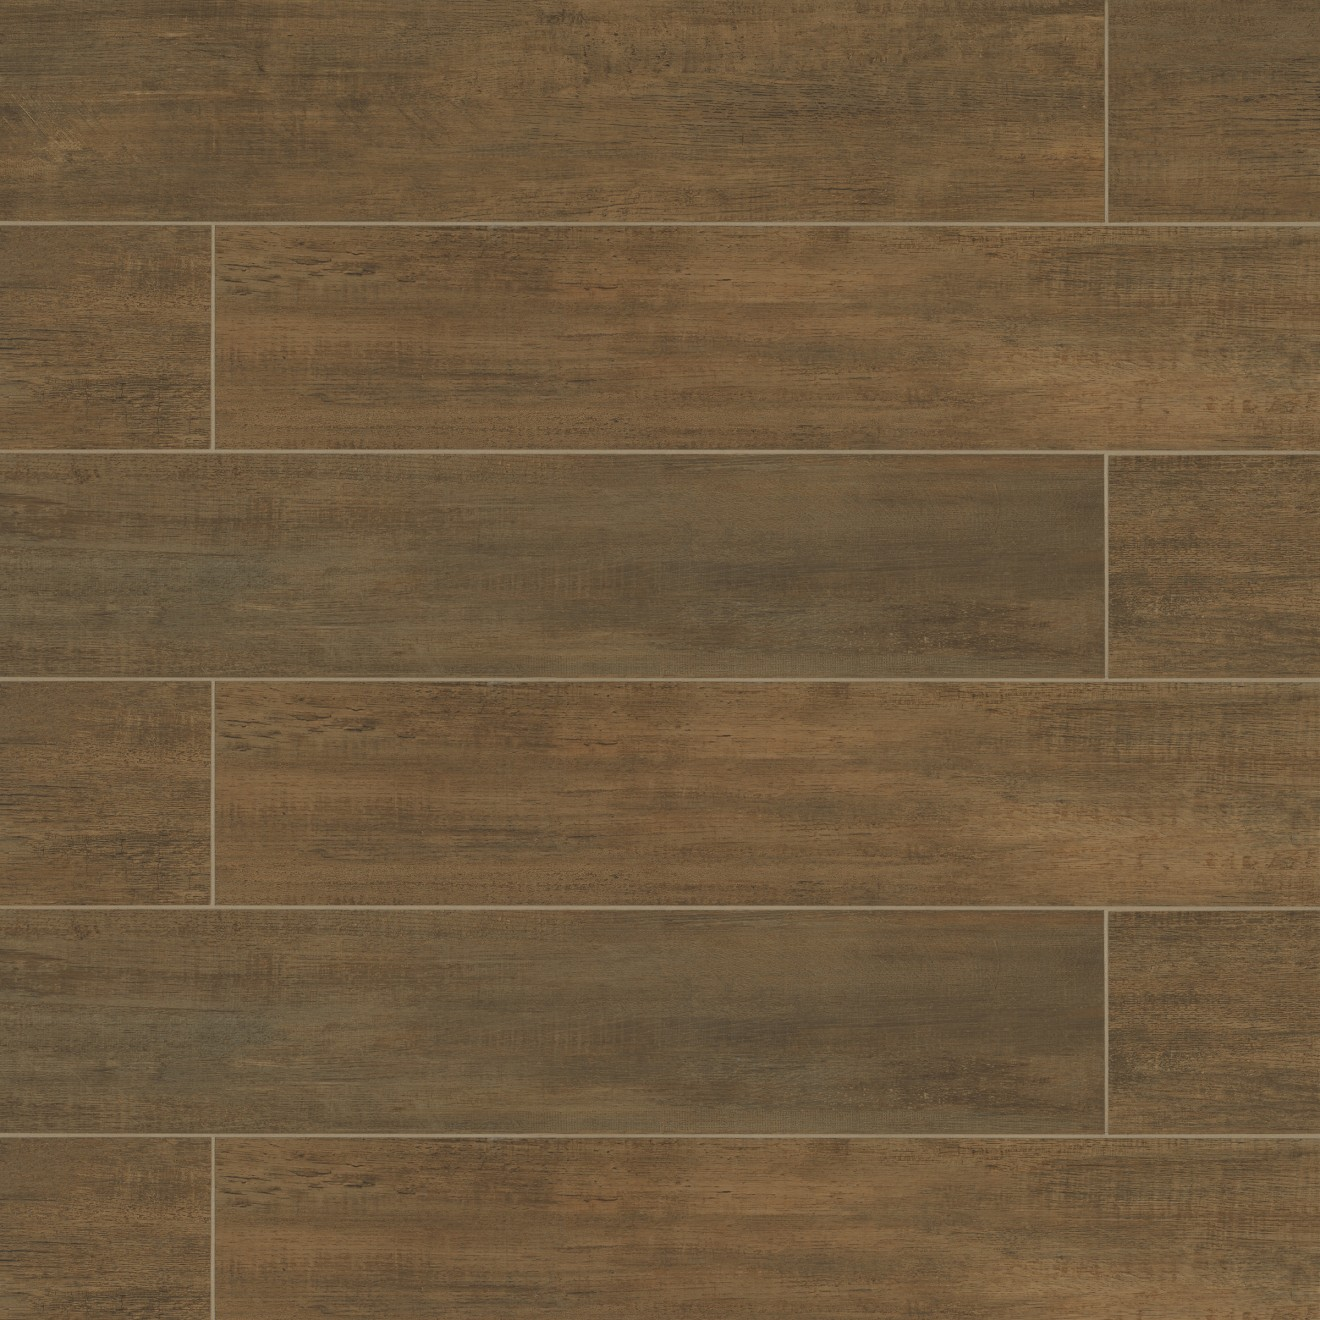 "Barrique 8"" x 40"" Floor & Wall Tile in Vert"